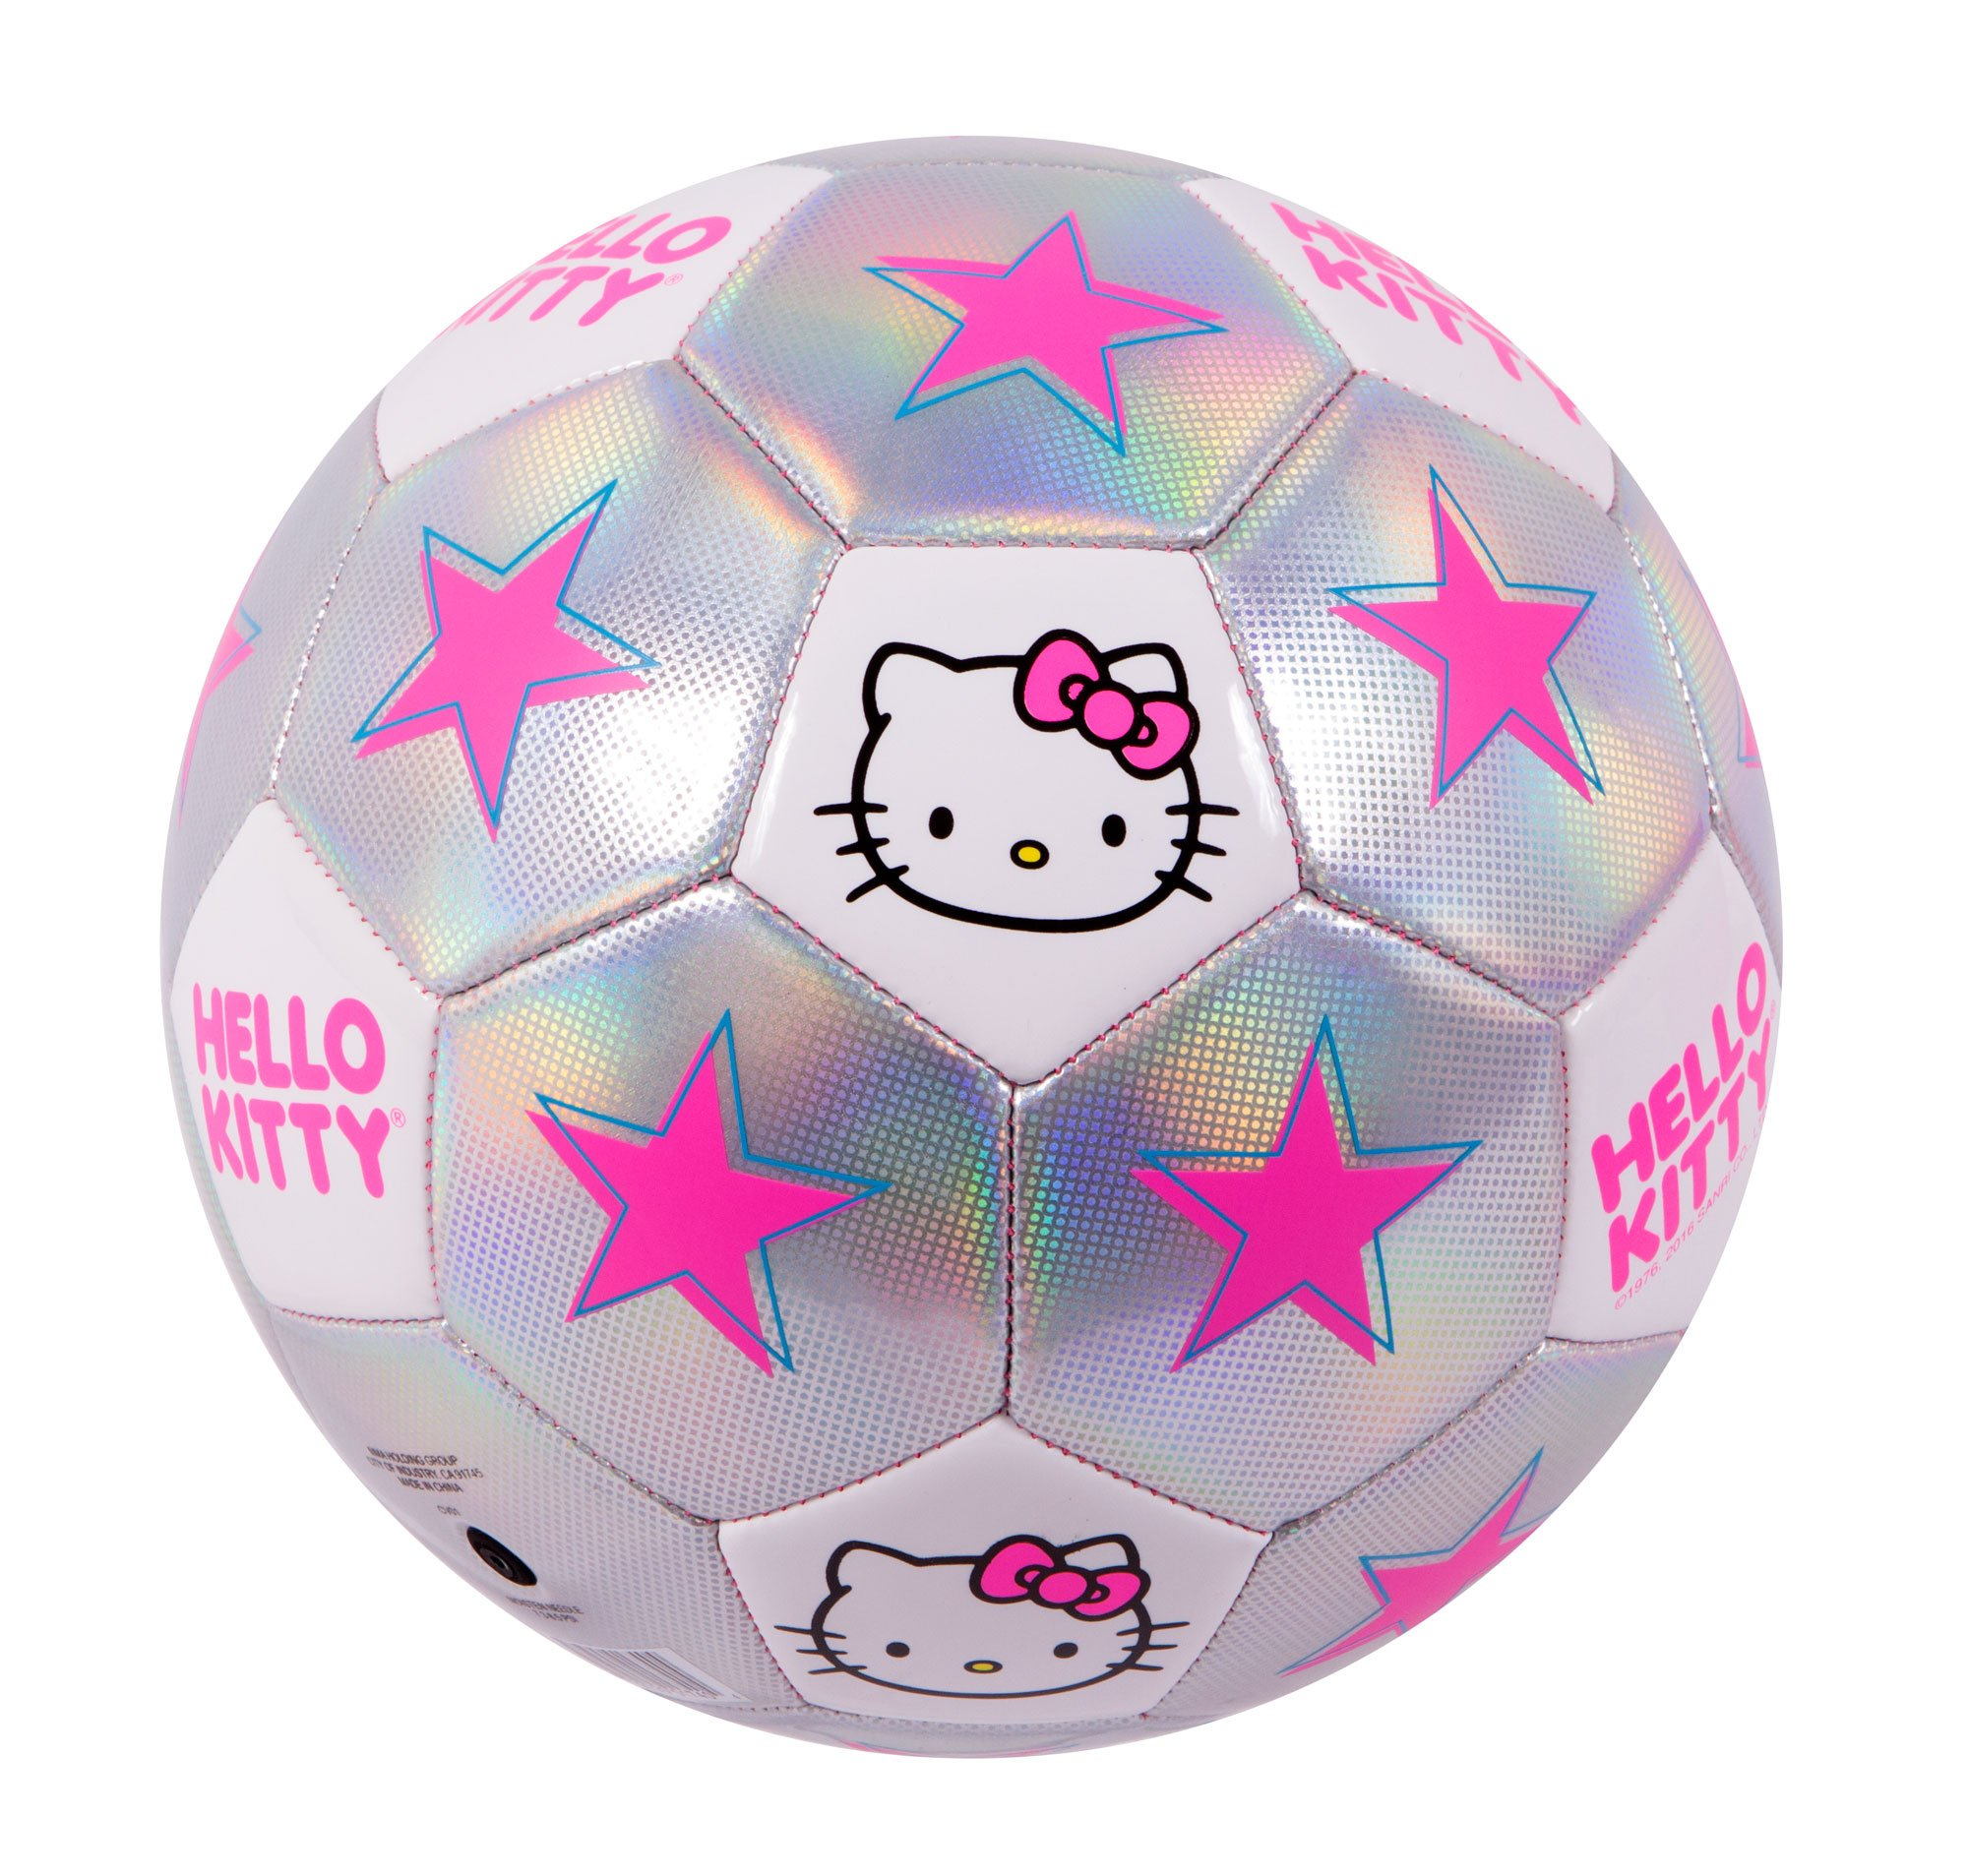 fca4624e573e Amazon.com   Hello Kitty Sports Go! Model 1601 Soccer Ball   Sports    Outdoors